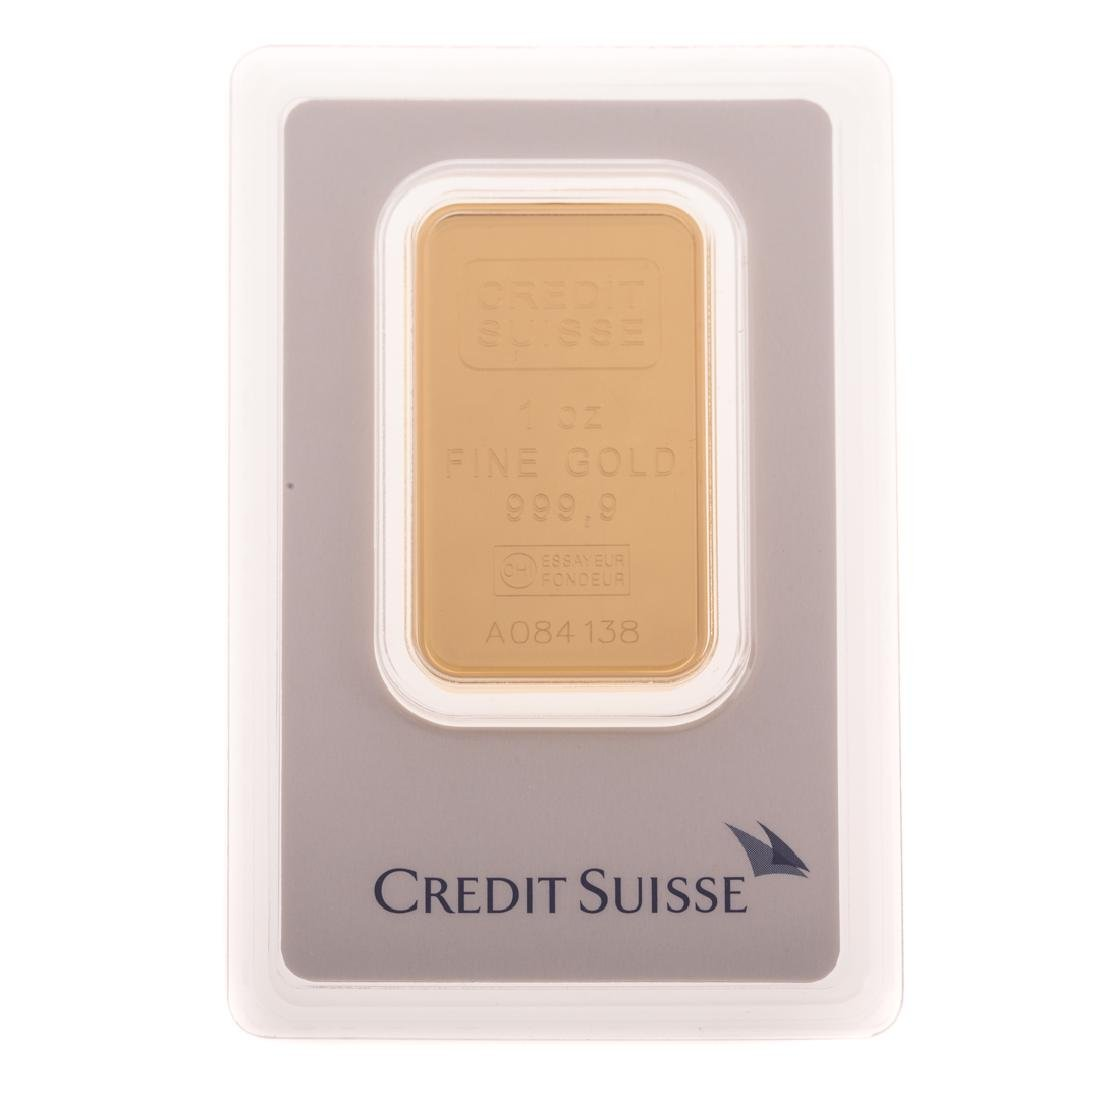 [US] 1 Ounce .999 Gold Bar - By Credit Suisse